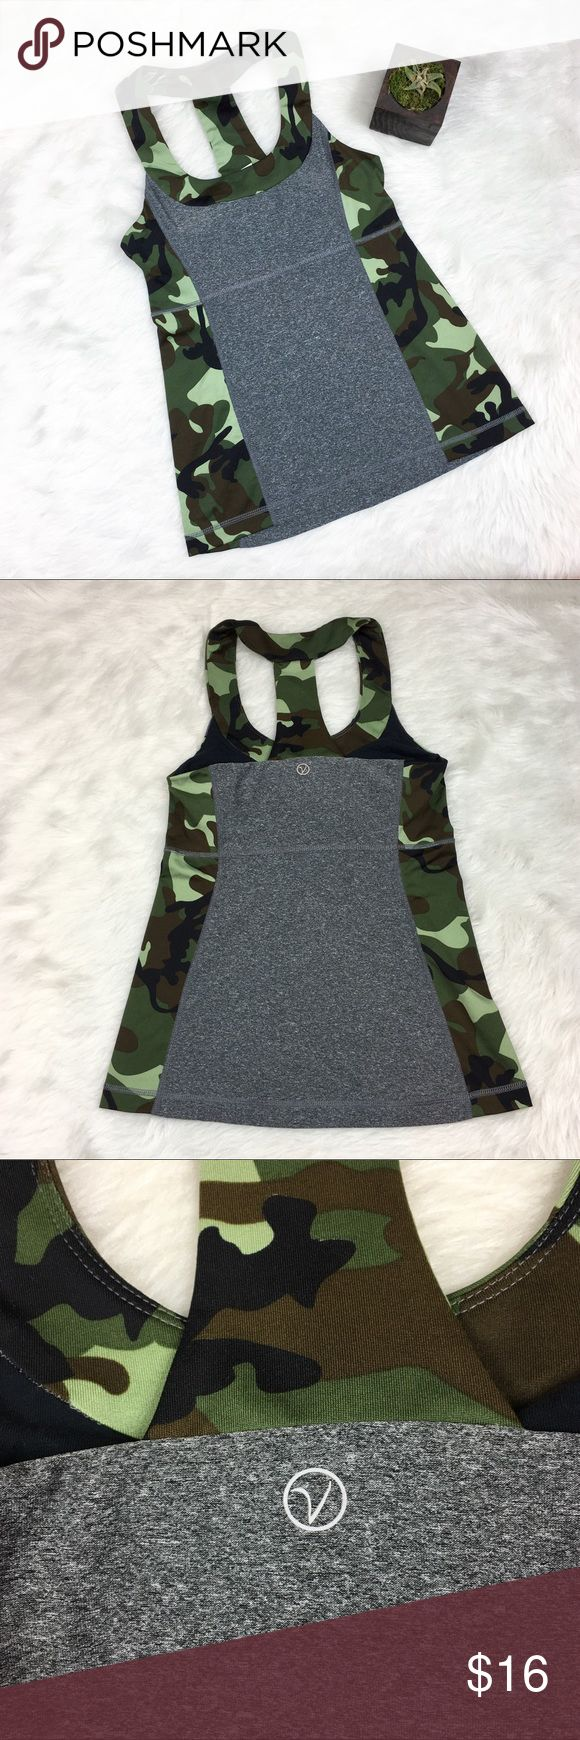 VOGO by Athletica Camo Workout Tank Top VOGO by Athletica camo, grey, & black workout tank top. Size extra small. Approximate measurements flat laid are 23' long & 13' bust. GUC with no major flaws and some basic wear. Has built in bra without pads. Does have a place to put pads. Back of built in bra is a mesh. Moisture wicking material. ❌No trades ❌ Modeling ❌No PayPal or off Posh transactions ❤️ I 💕Bundles ❤️Reasonable Offers PLEASE ❤️ VOGO Tops Tank Tops